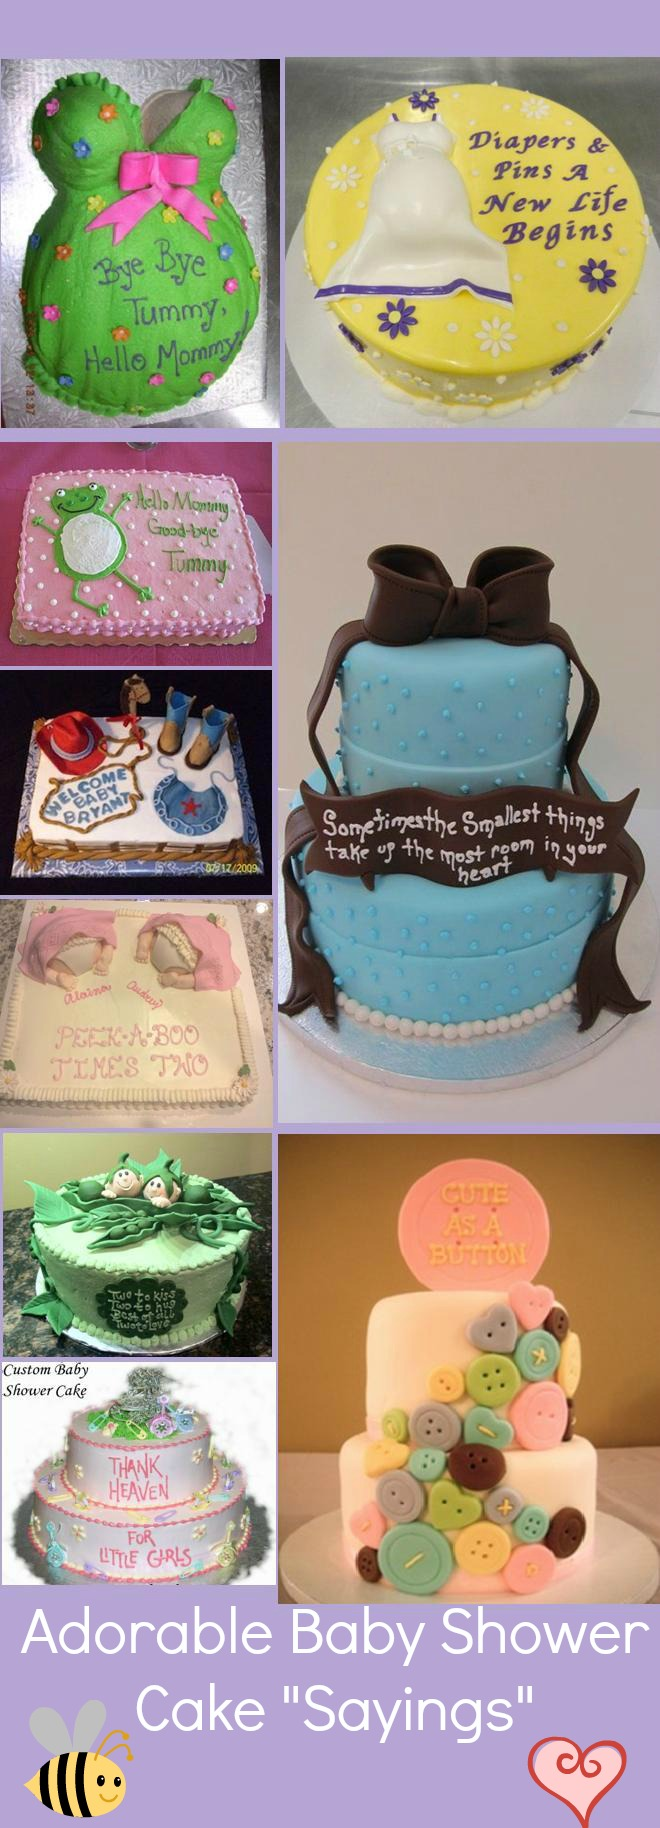 by bonham categories baby shower baby shower ideas tagged baby